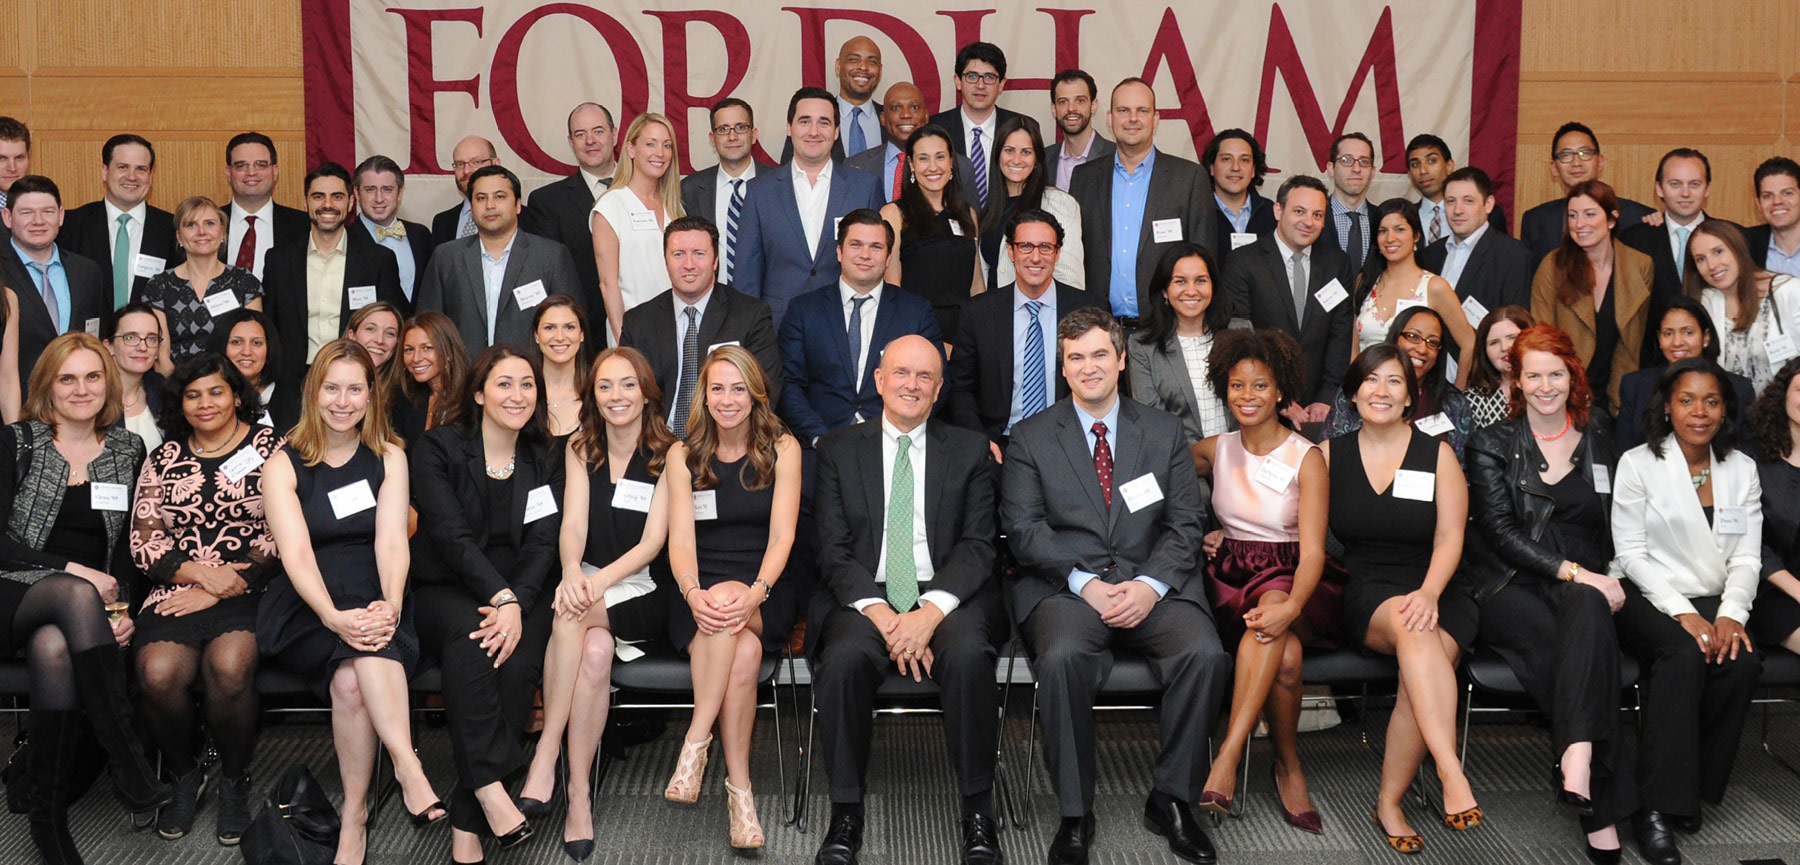 FLS Fordham Law Alumni Reunion 2015